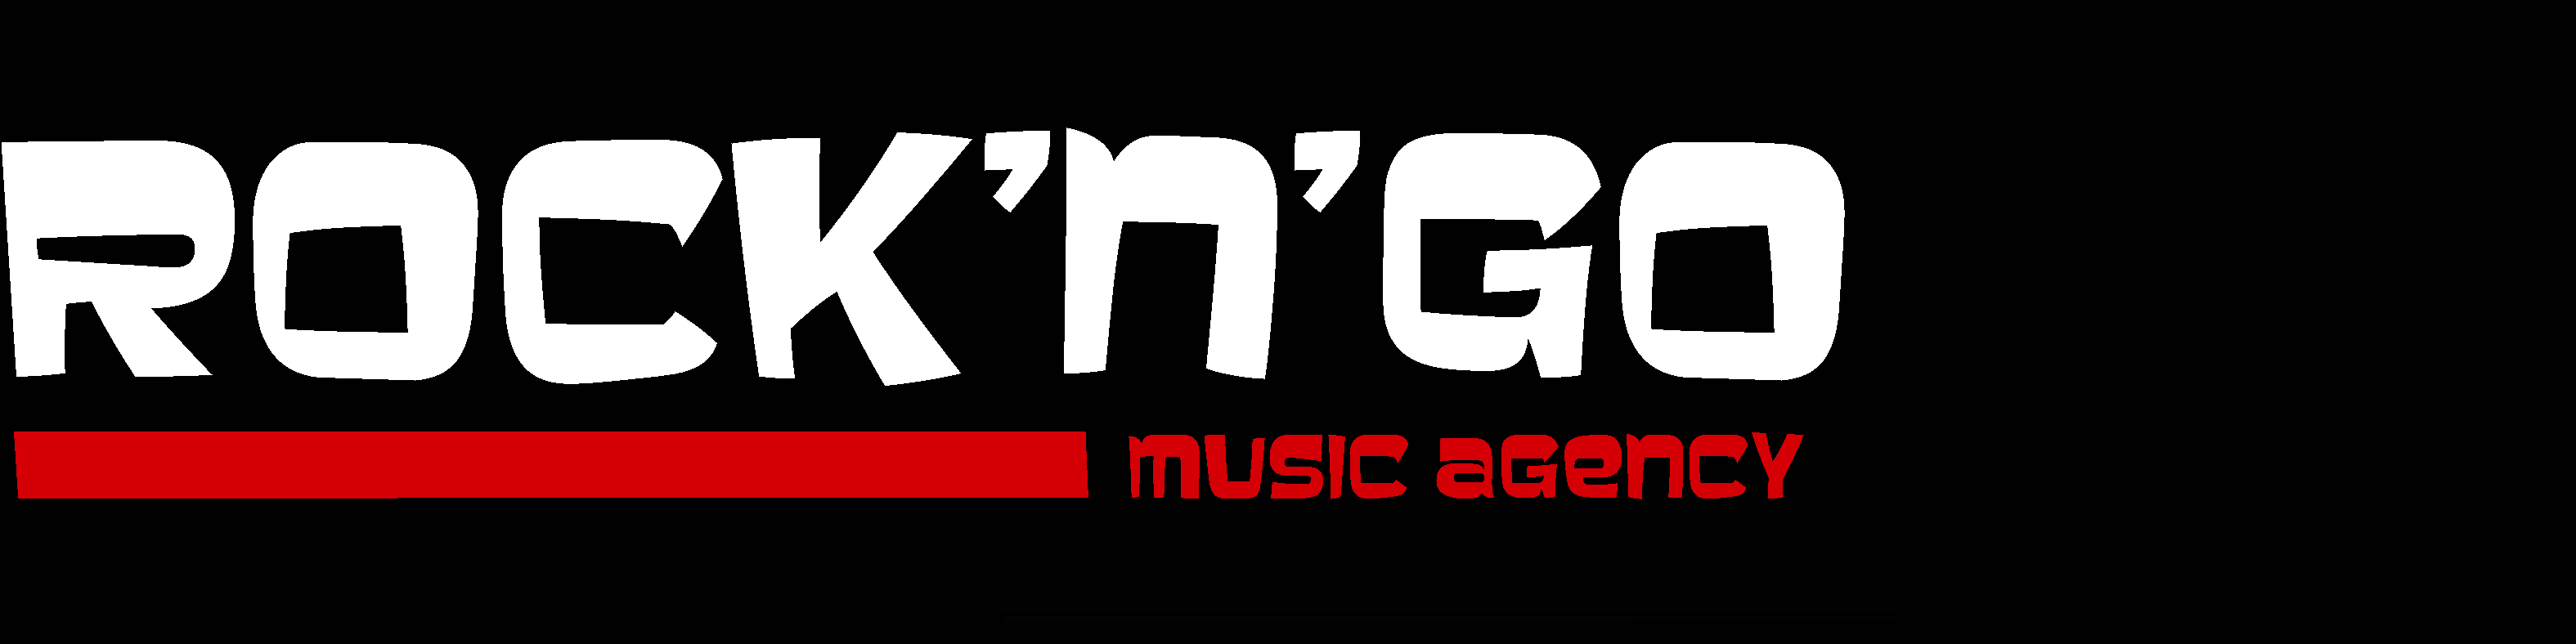 ROCK'n'GO MUSIC AGENCY 2018